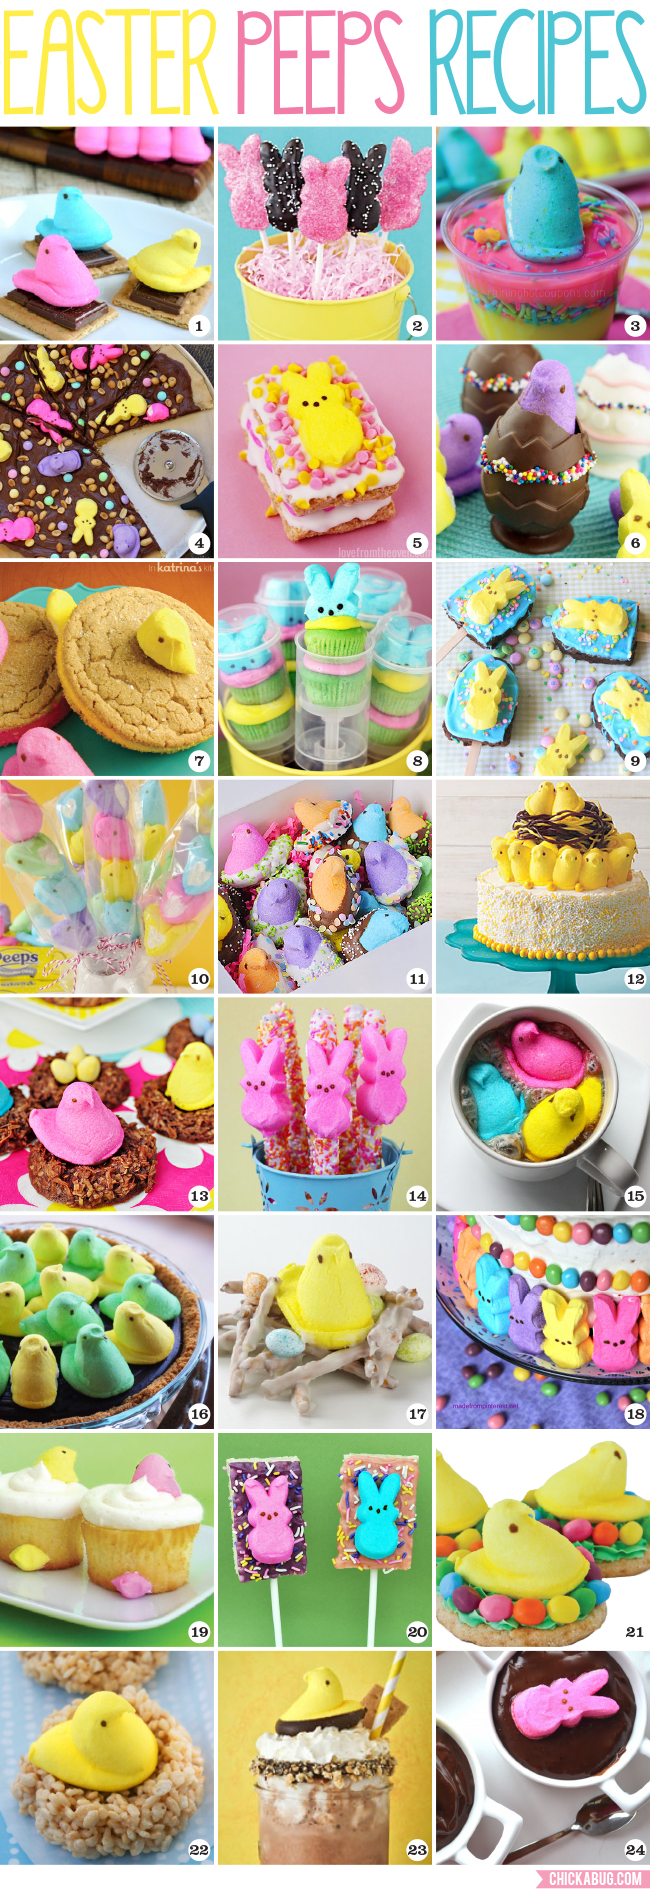 The Best Easter Peeps Recipes